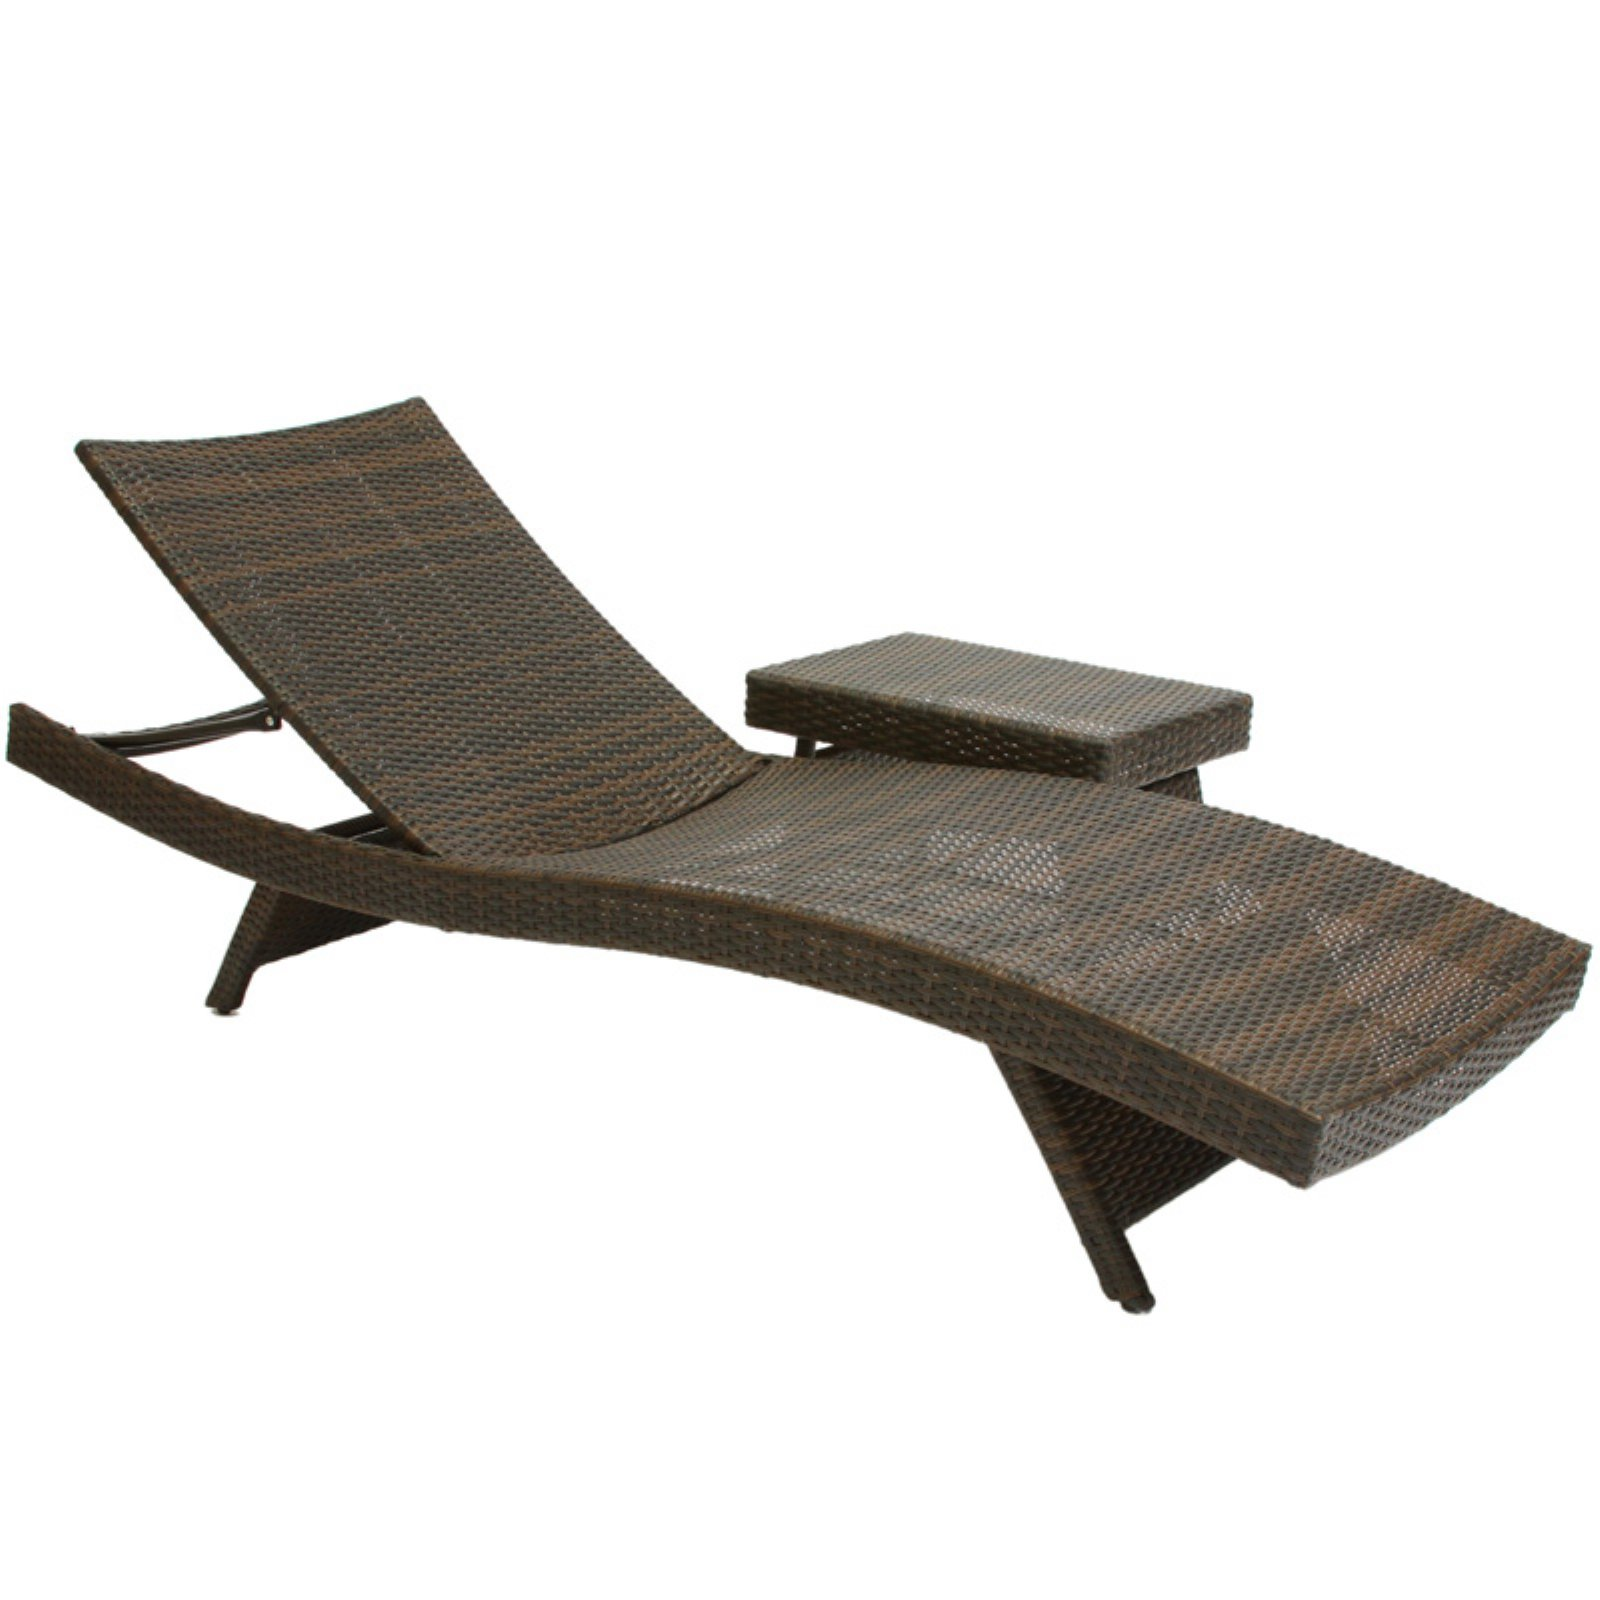 Wicker Multi-brown Outdoor Adjustable Lounge and Table